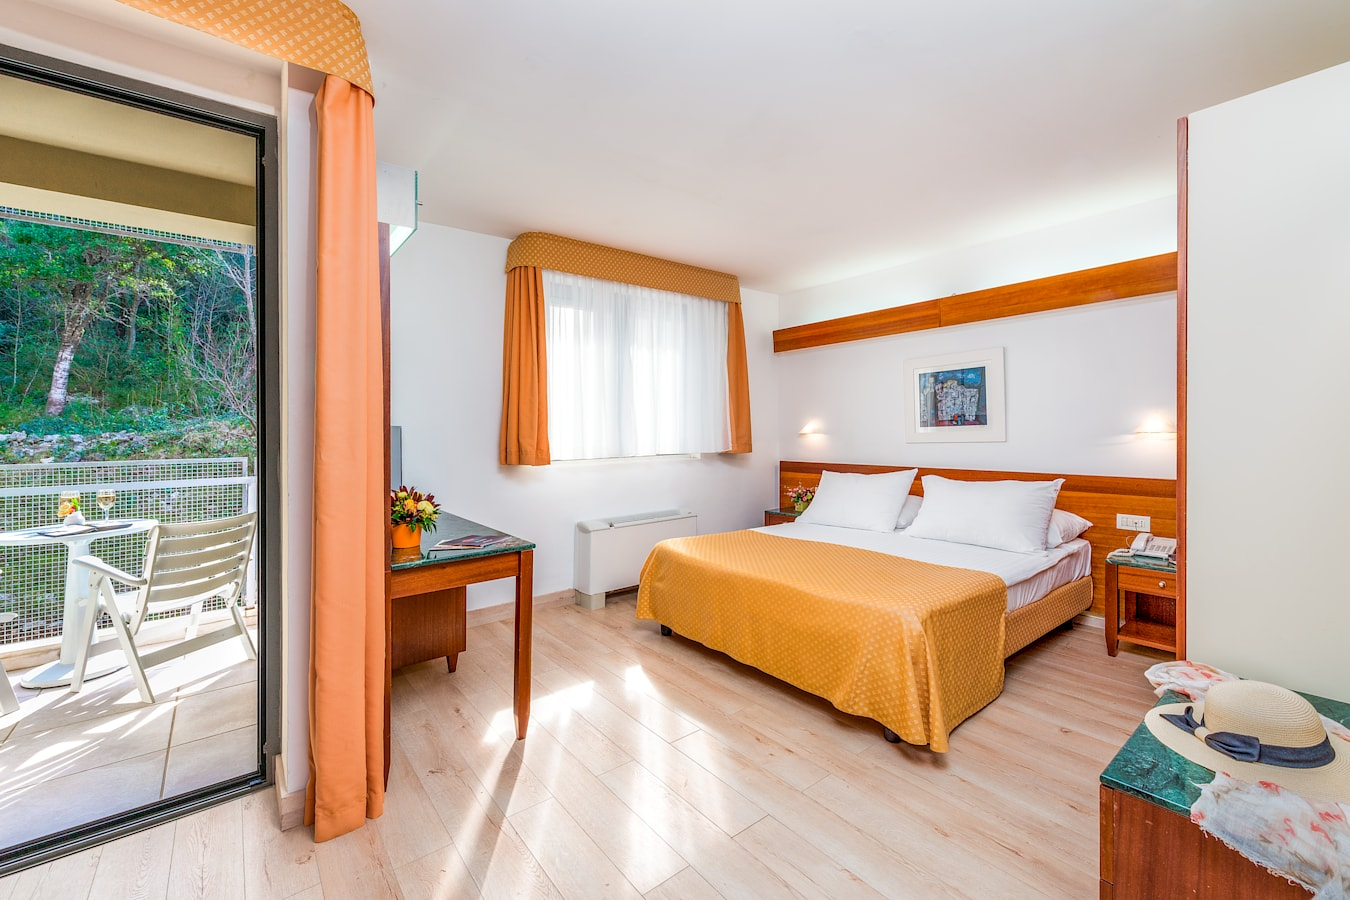 uvala-hotel-dubrovnik-double-room-balcony-park-side.jpg